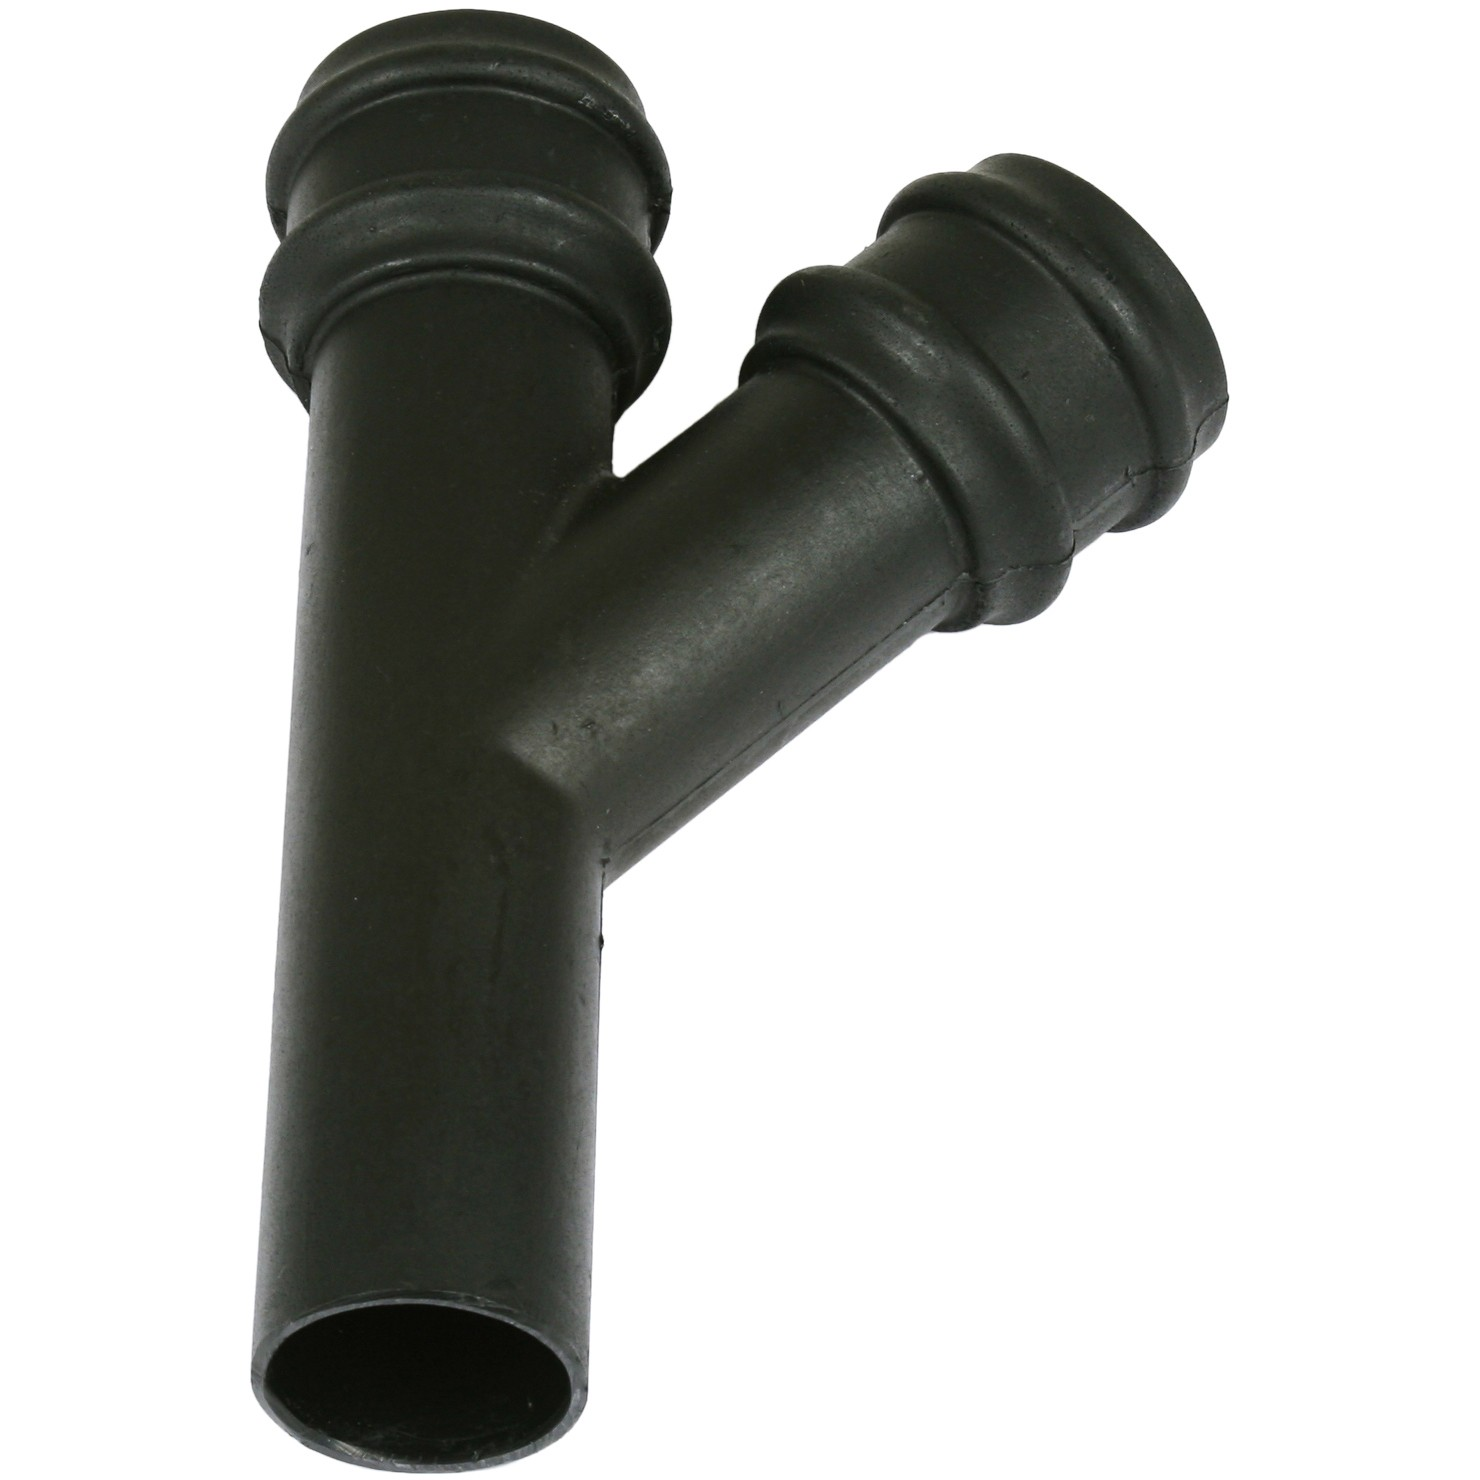 Cascade 68mm Round Cast Iron Style 135 Degree Down Pipe Branch - Black